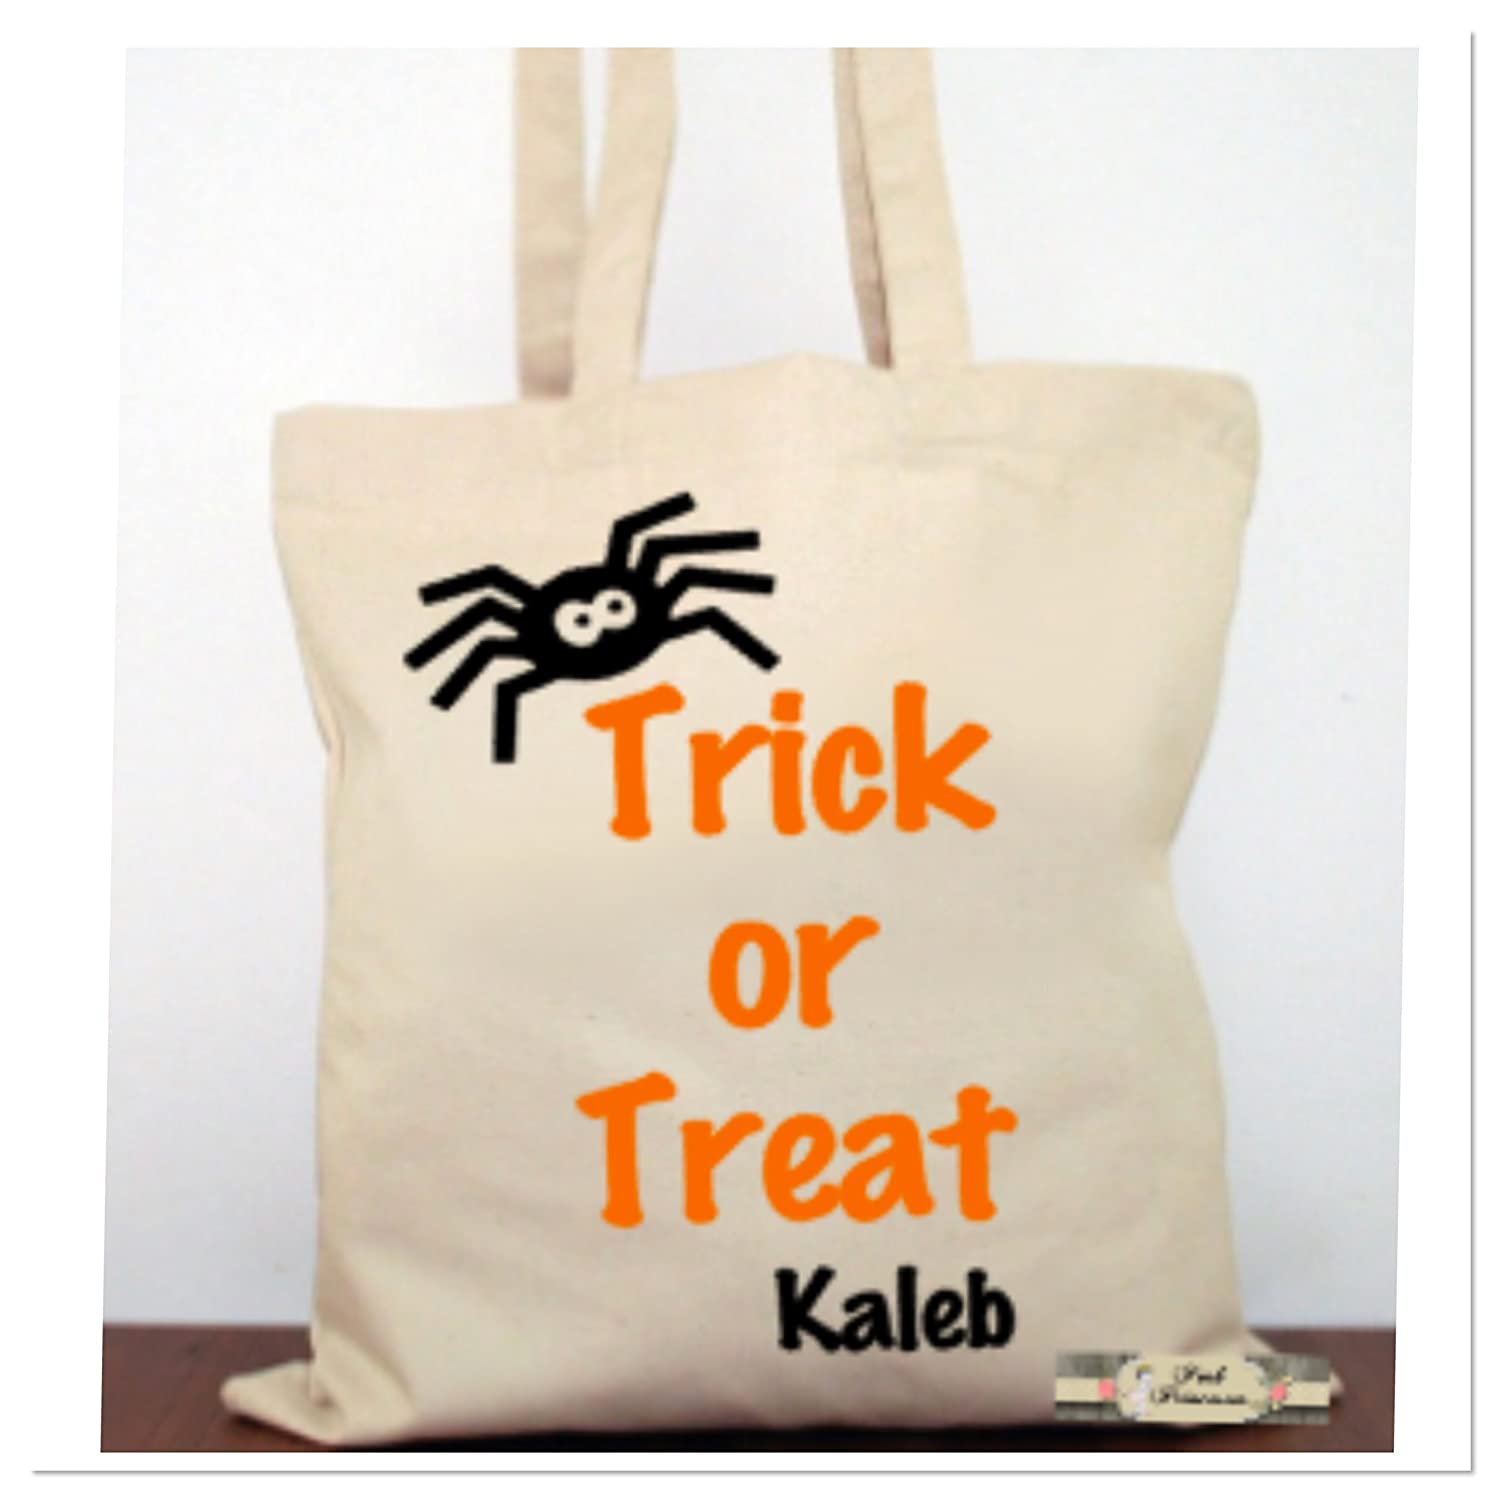 Spiders Webs Large Tote Bag Grocery Bag Ready to Ship Halloween Shopping Tote